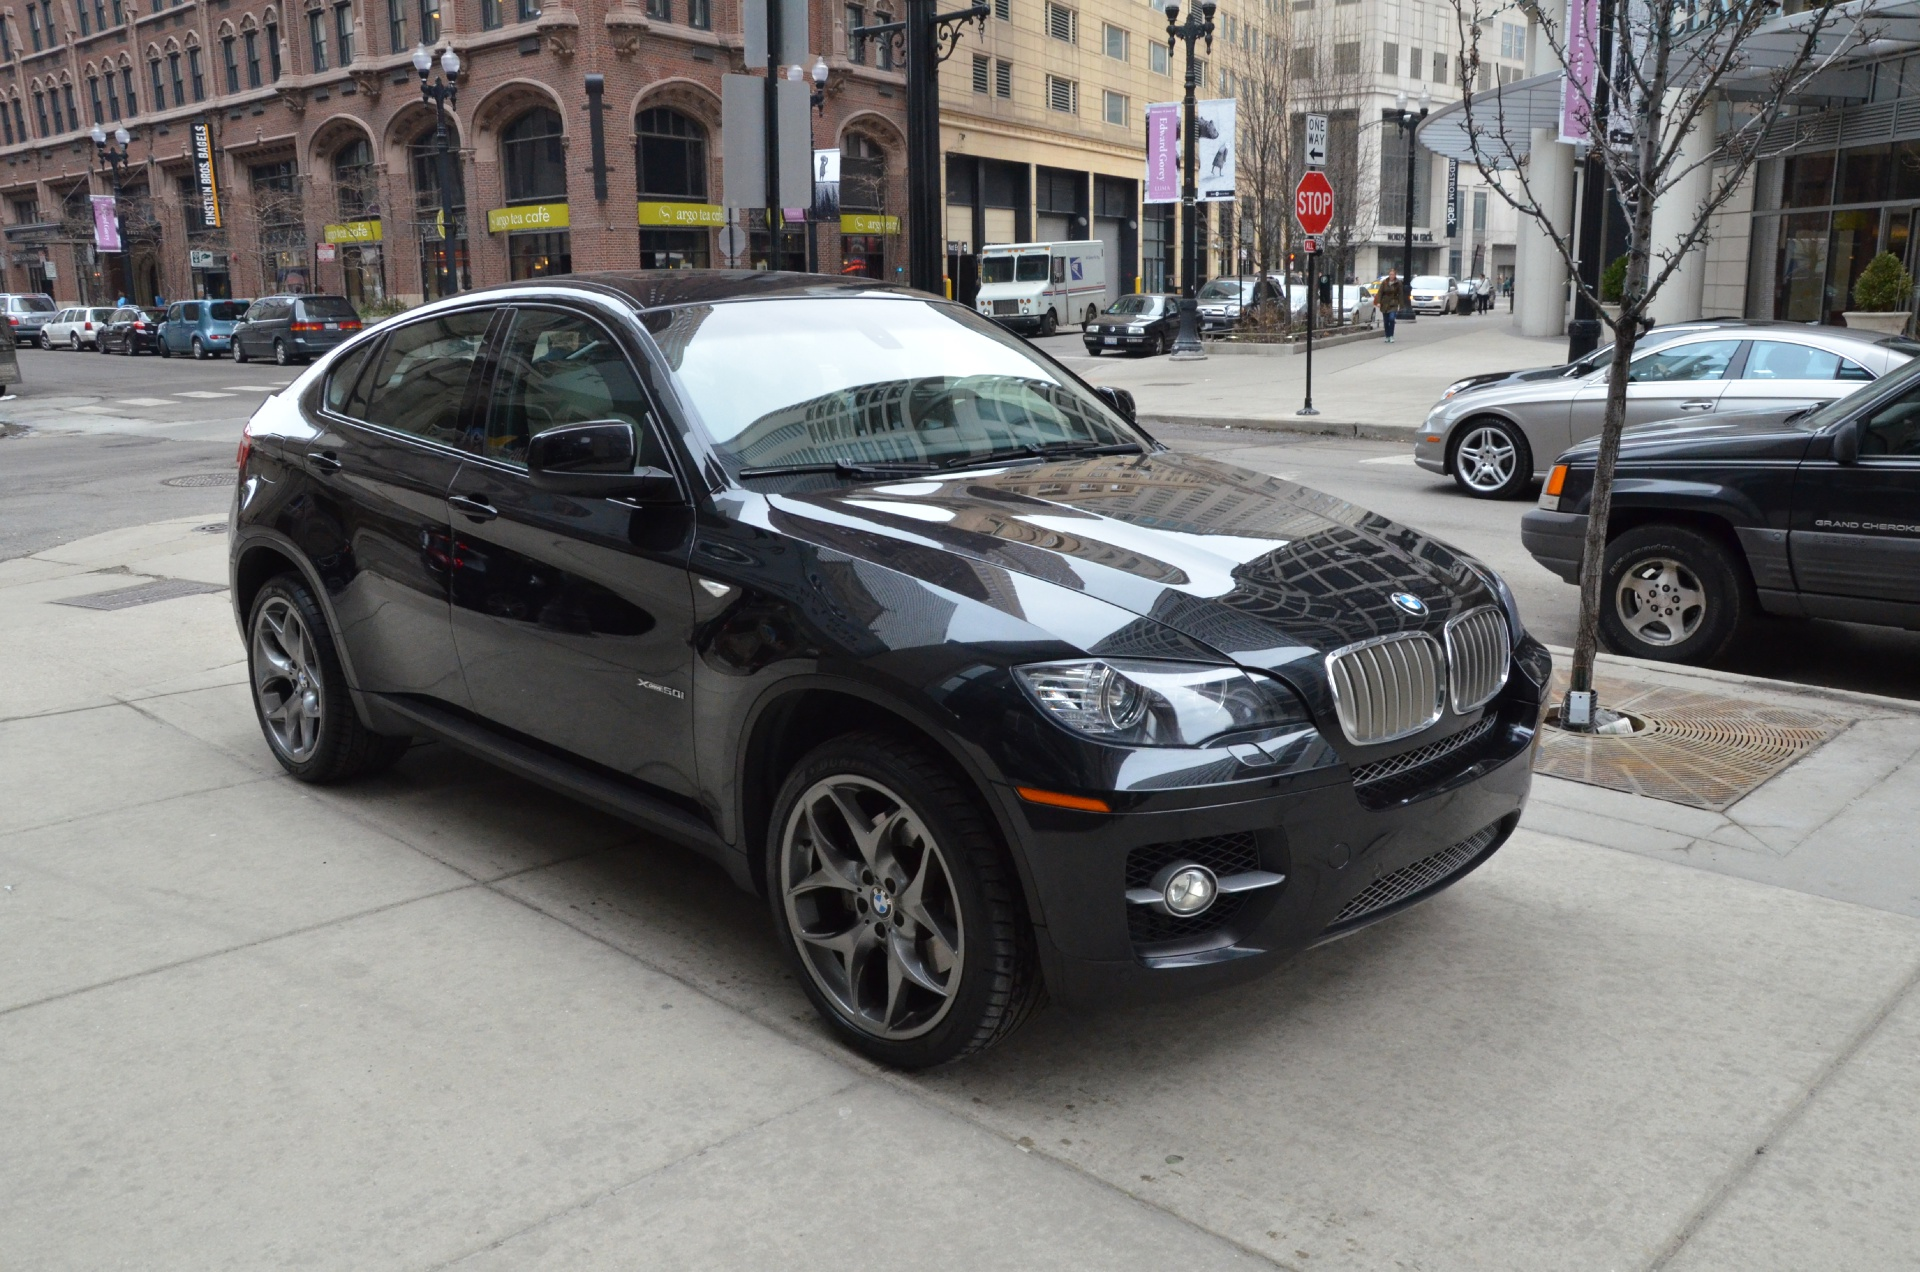 2010 Bmw X6 Xdrive50i Stock 94807 For Sale Near Chicago